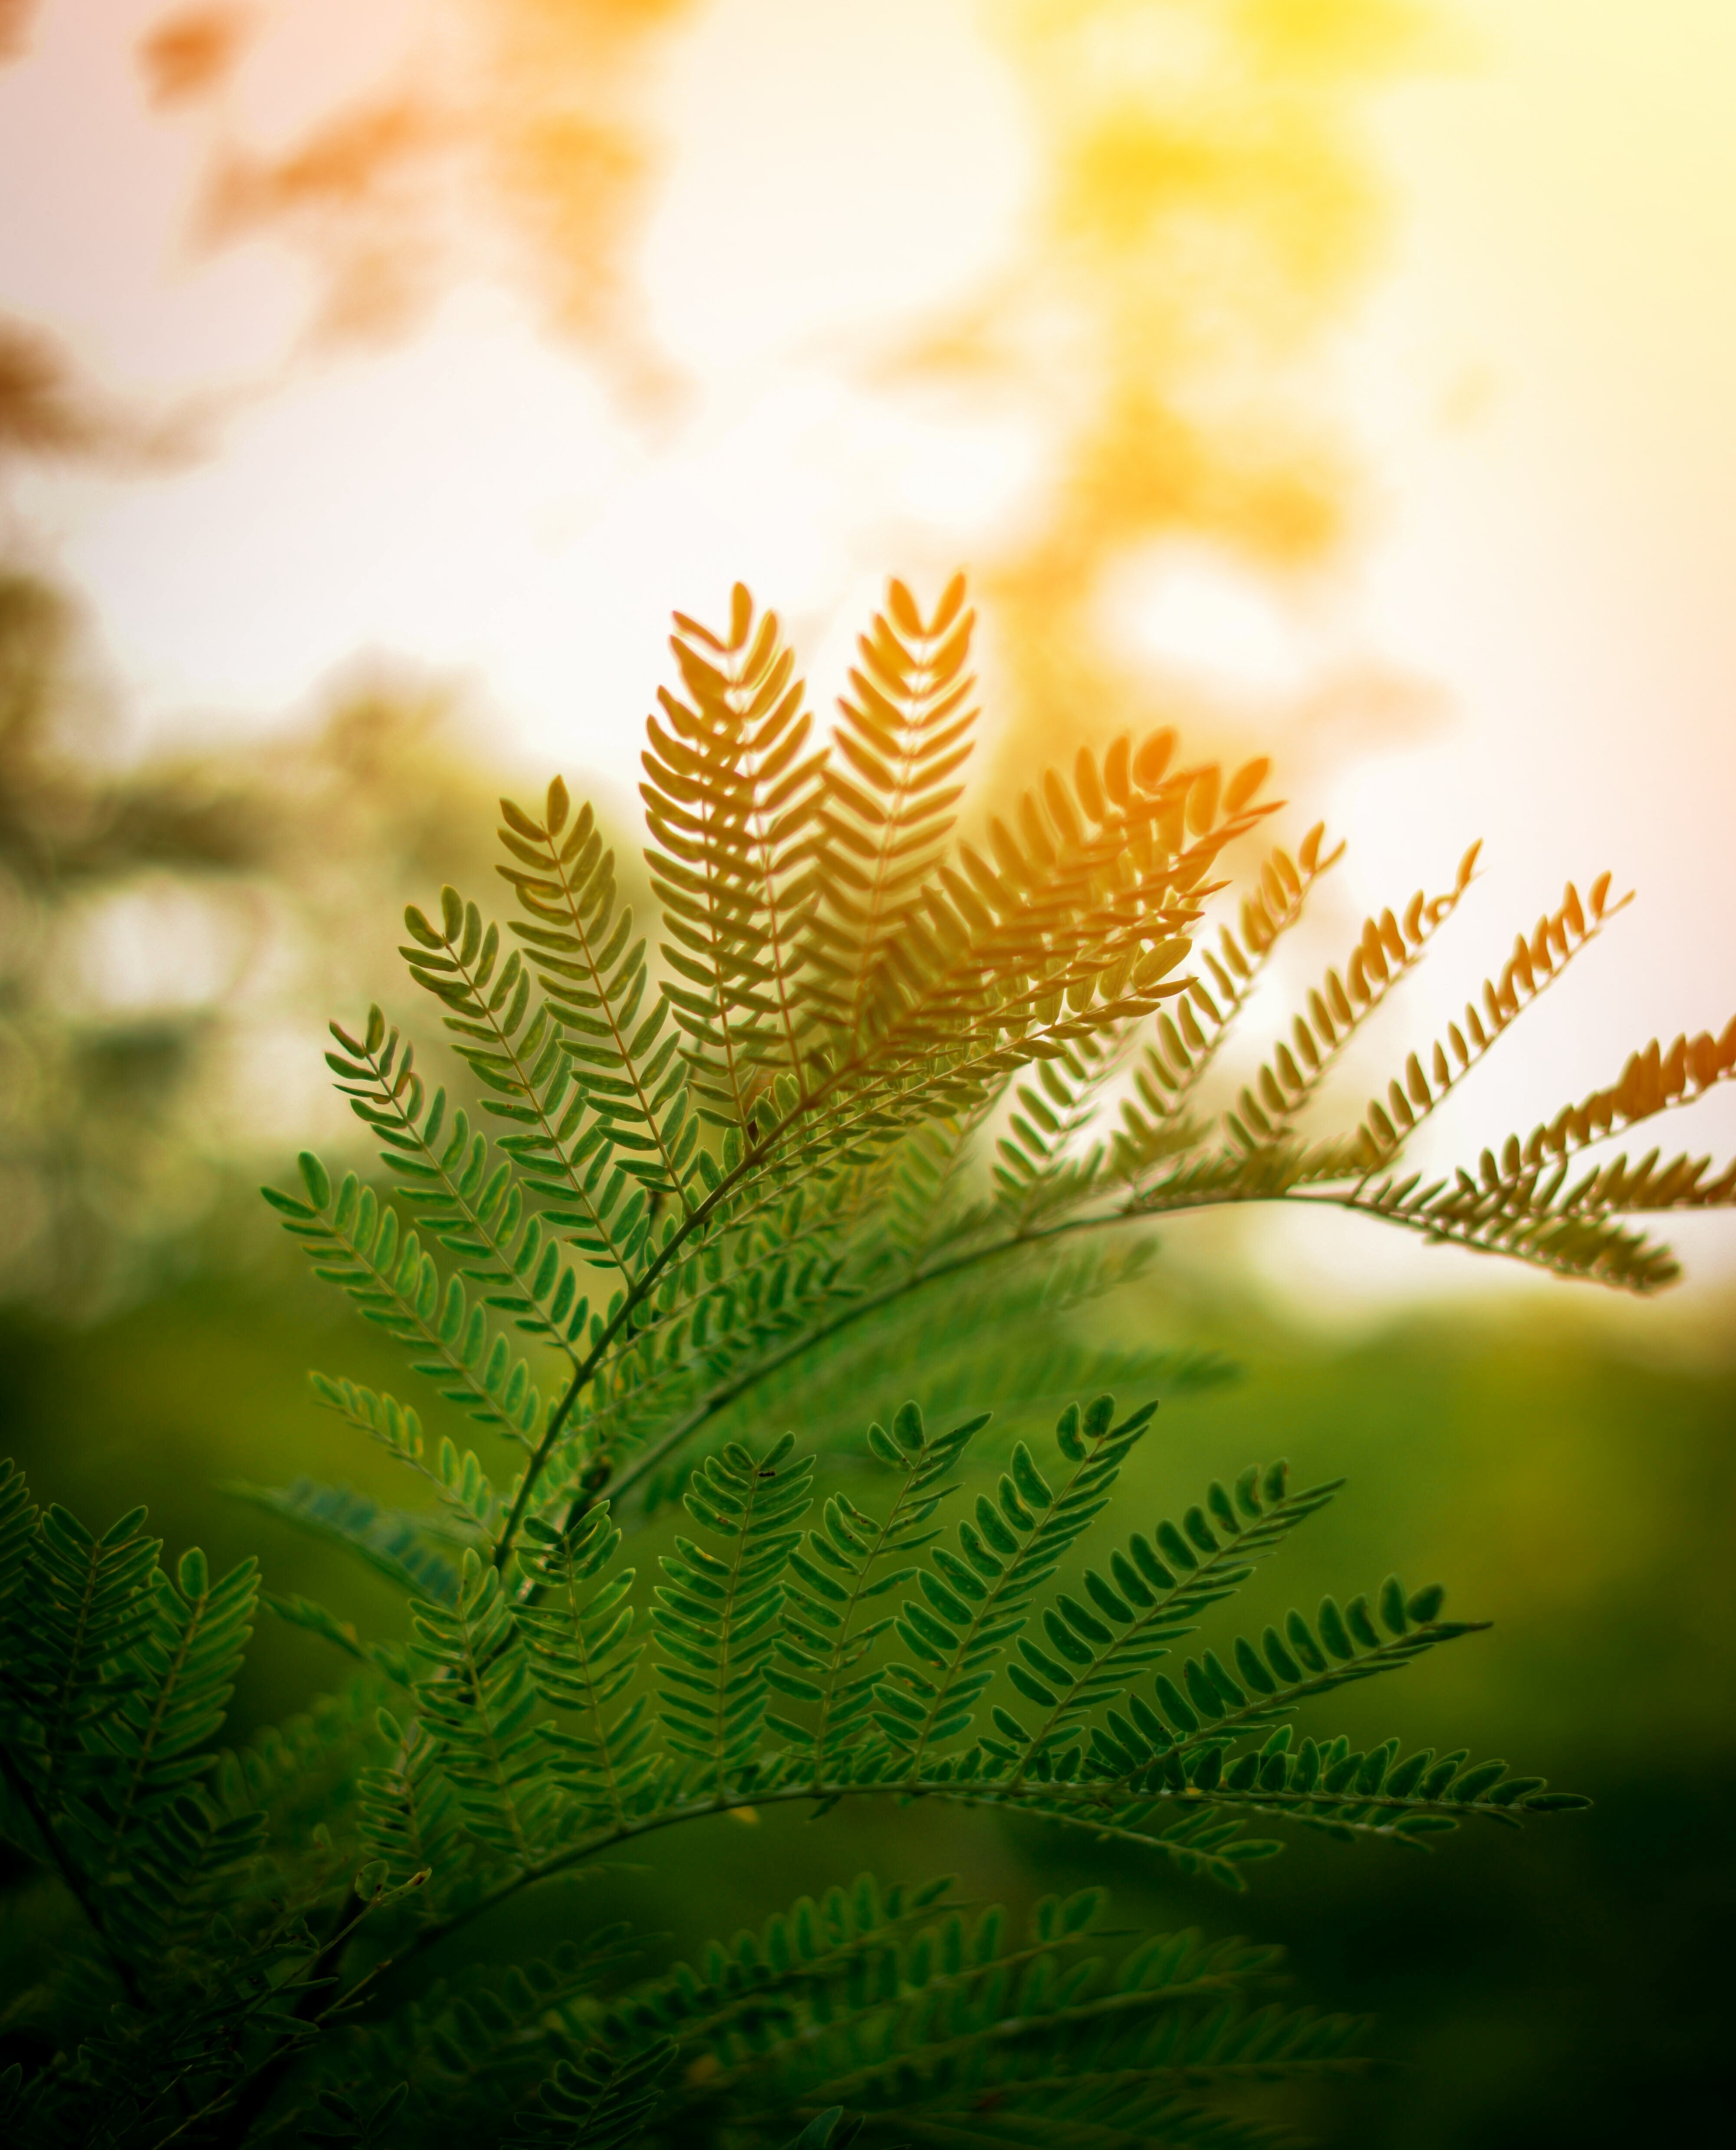 150049 download wallpaper Nature, Fern, Leaves, Branches, Plant, Sunlight screensavers and pictures for free